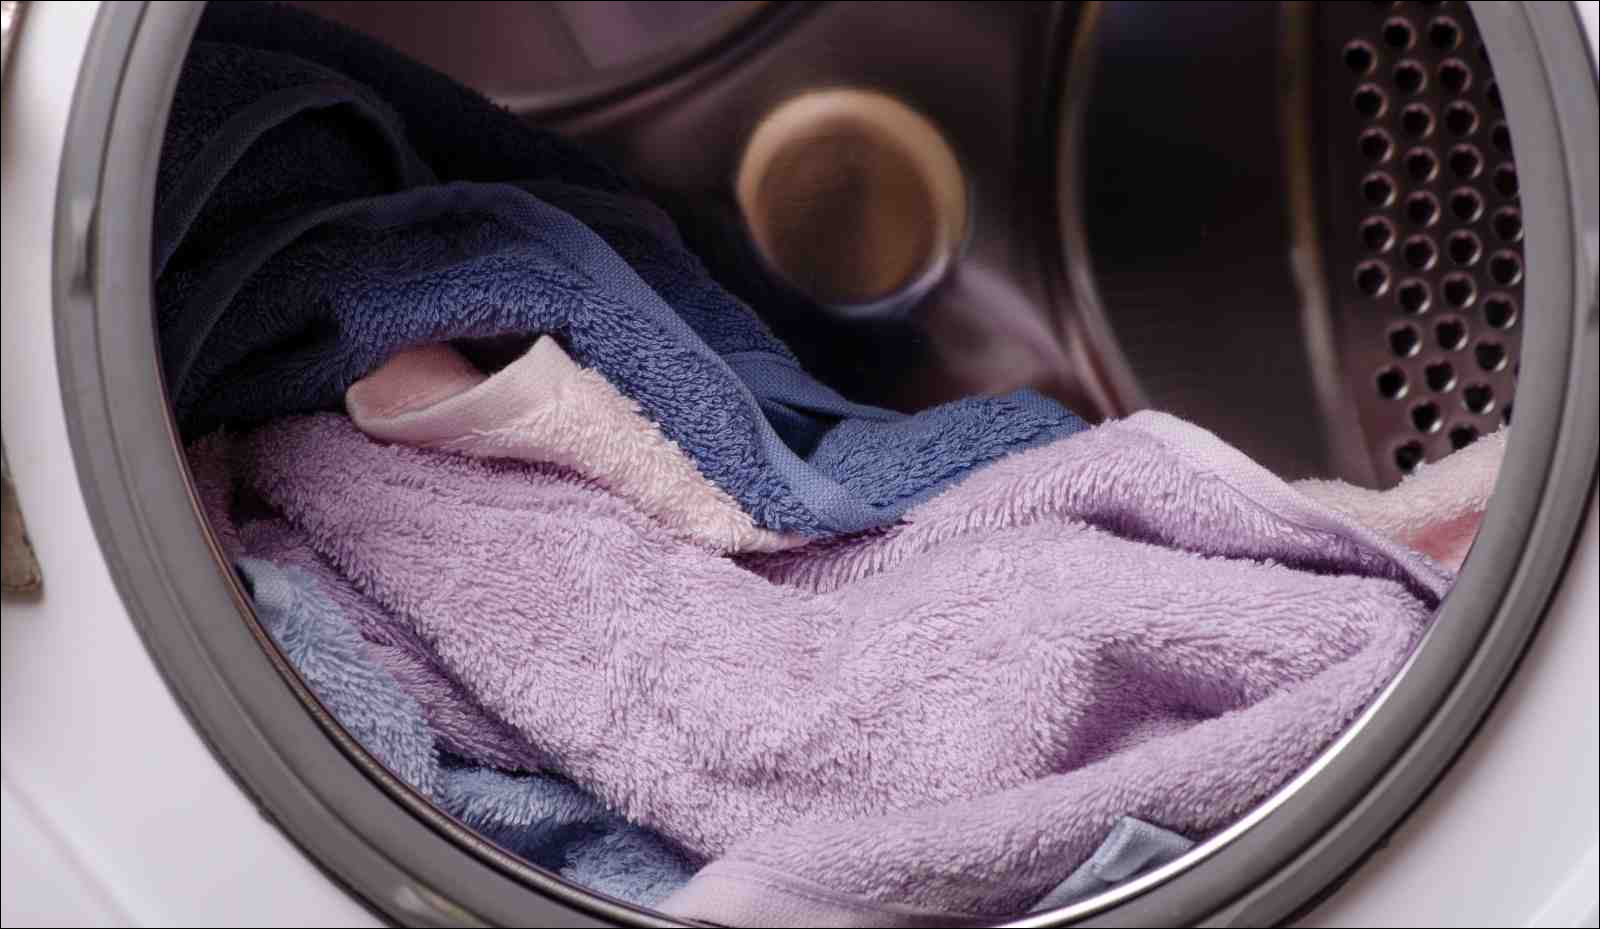 Washing machine drum with towels